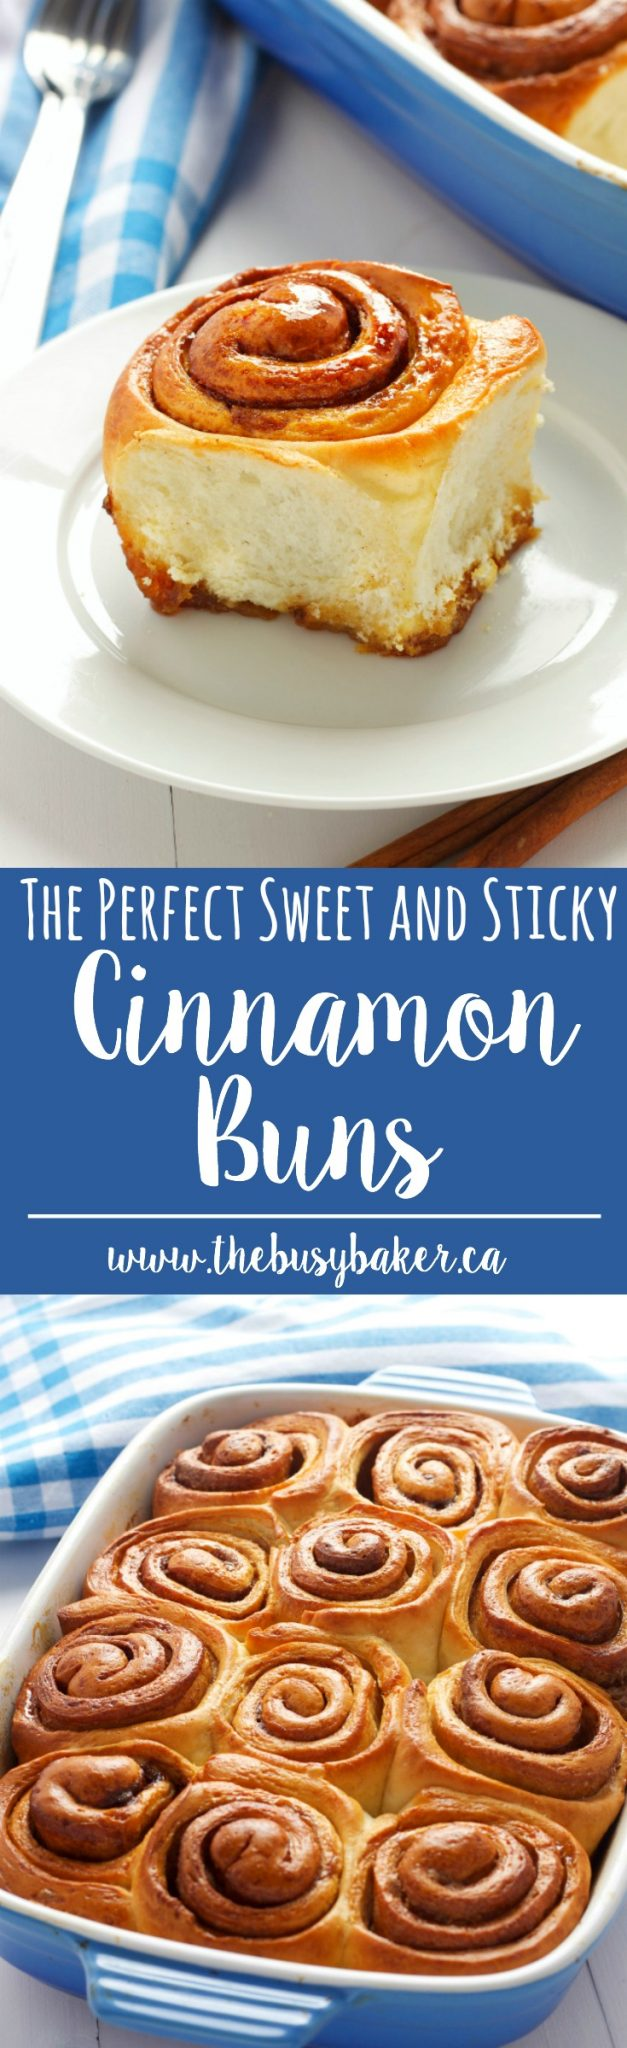 Homemade cinnamon buns that are deliciously sweet and sticky, thanks to a secret ingredient! You can make perfect cinnamon buns at home every time with this Homemade Cinnamon Buns recipe and Top 5 Pro Tips! via @busybakerblog